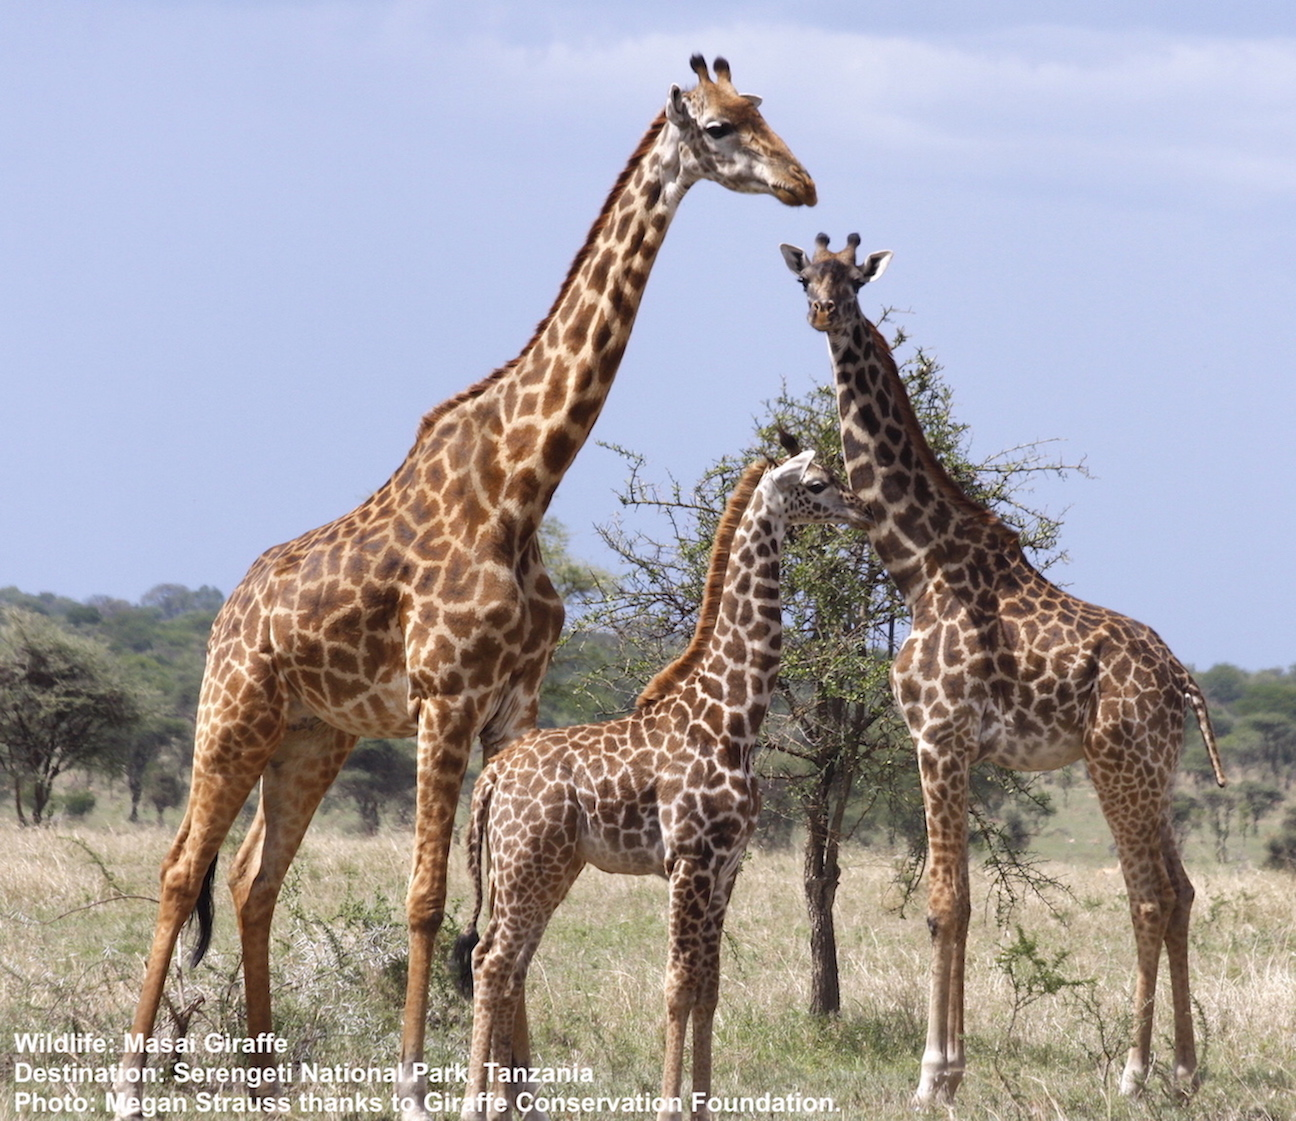 Serengeti National Park, Tanzania is home to the Masai giraffe as well as the location of the great wildebeest migration Image: ©Megan Strauss with thanks to the Giraffe Conservation Foundation